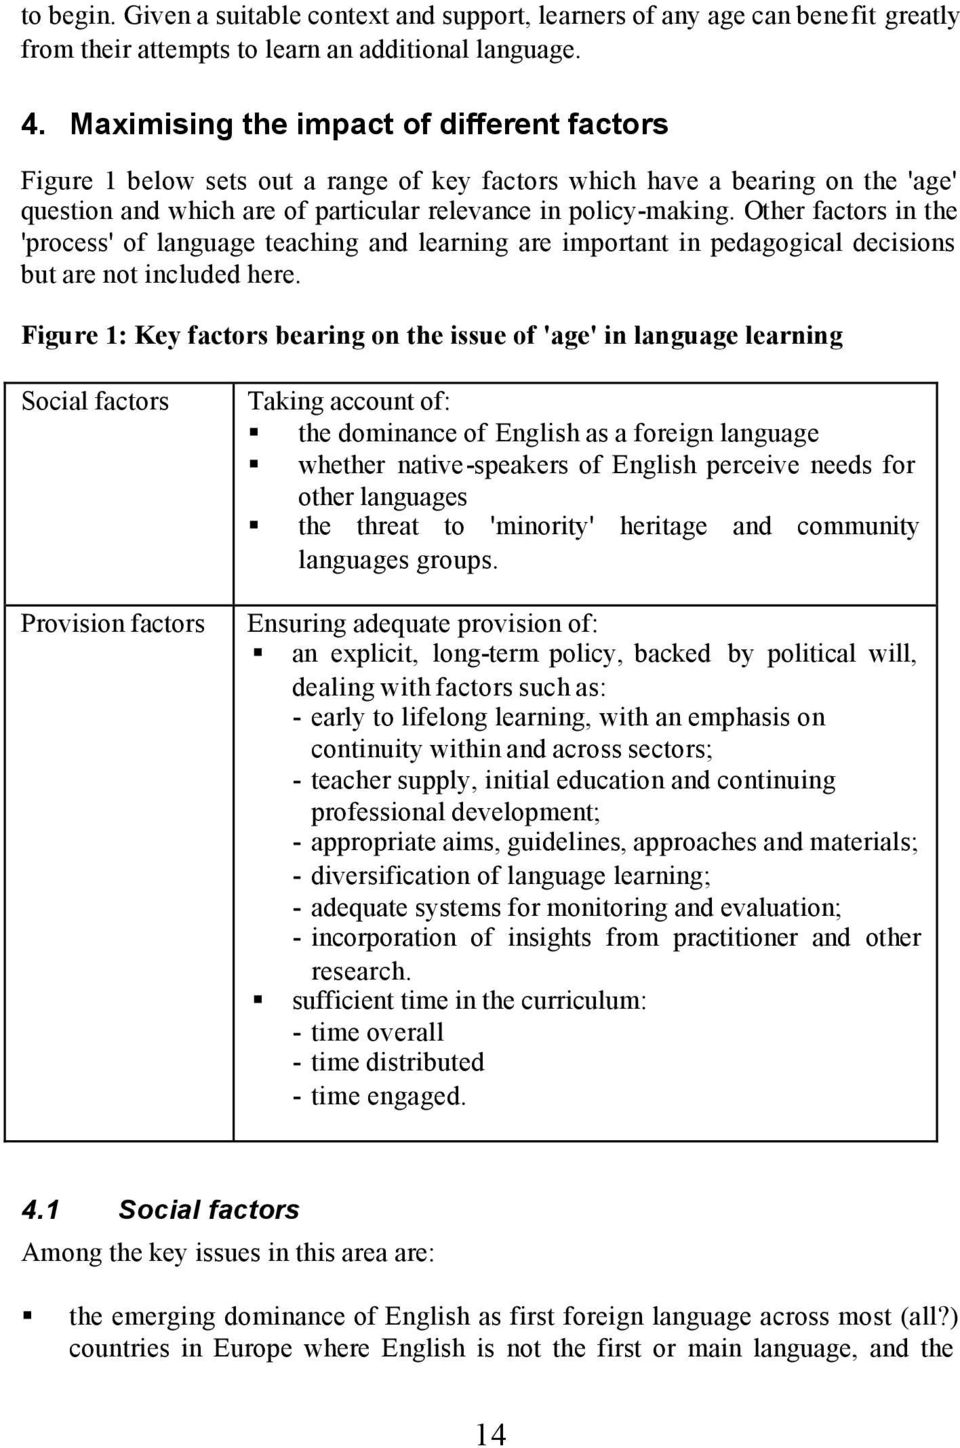 Other factors in the 'process' of language teaching and learning are important in pedagogical decisions but are not included here.